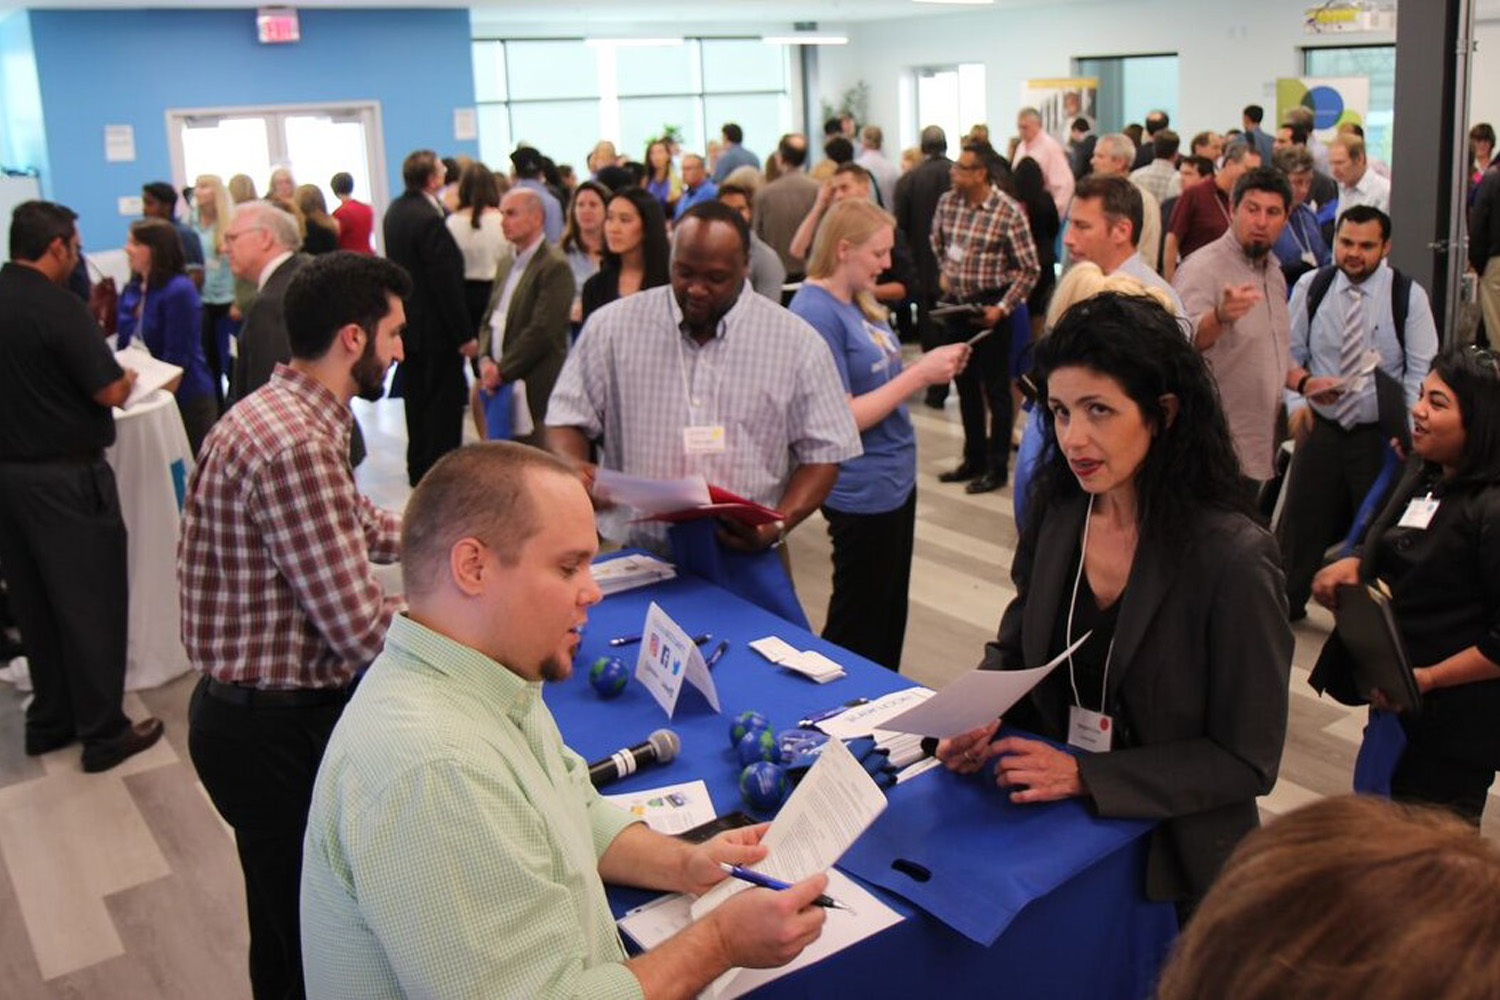 Attending job fairs and meet-up groups helps create networking opportunities and direct access to potential employers.